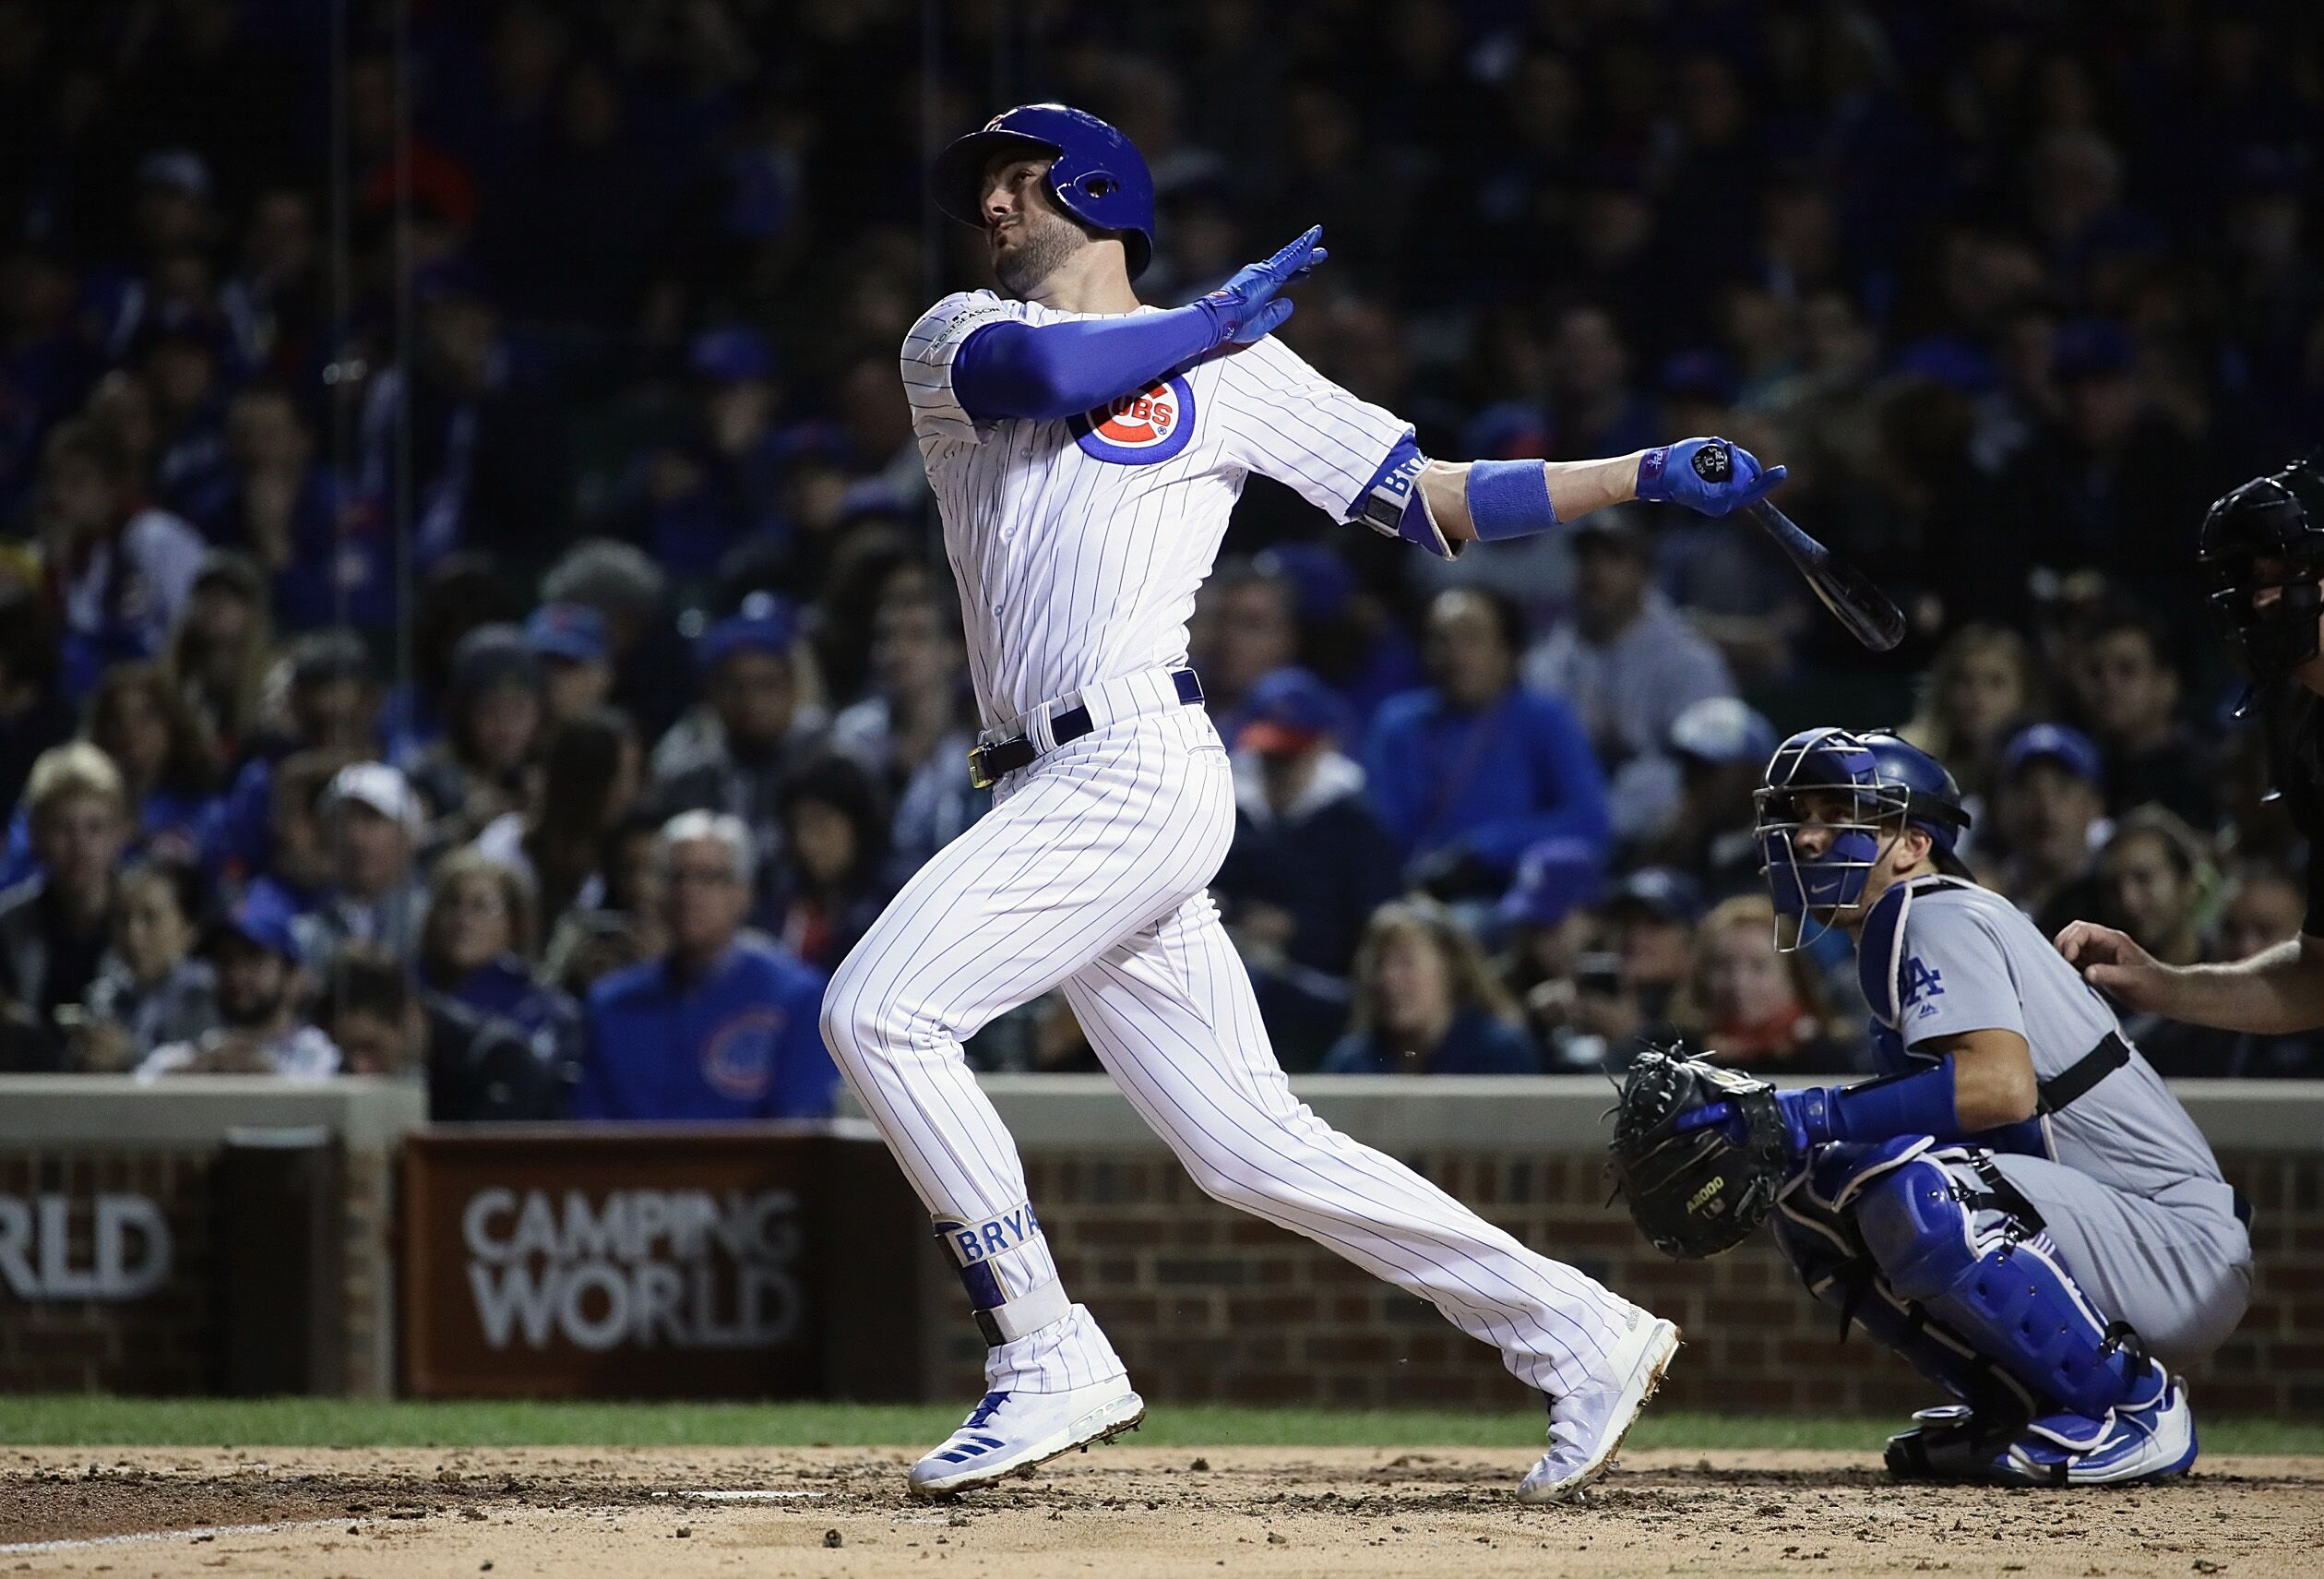 863246852-league-championship-series-los-angeles-dodgers-v-chicago-cubs-game-five.jpg